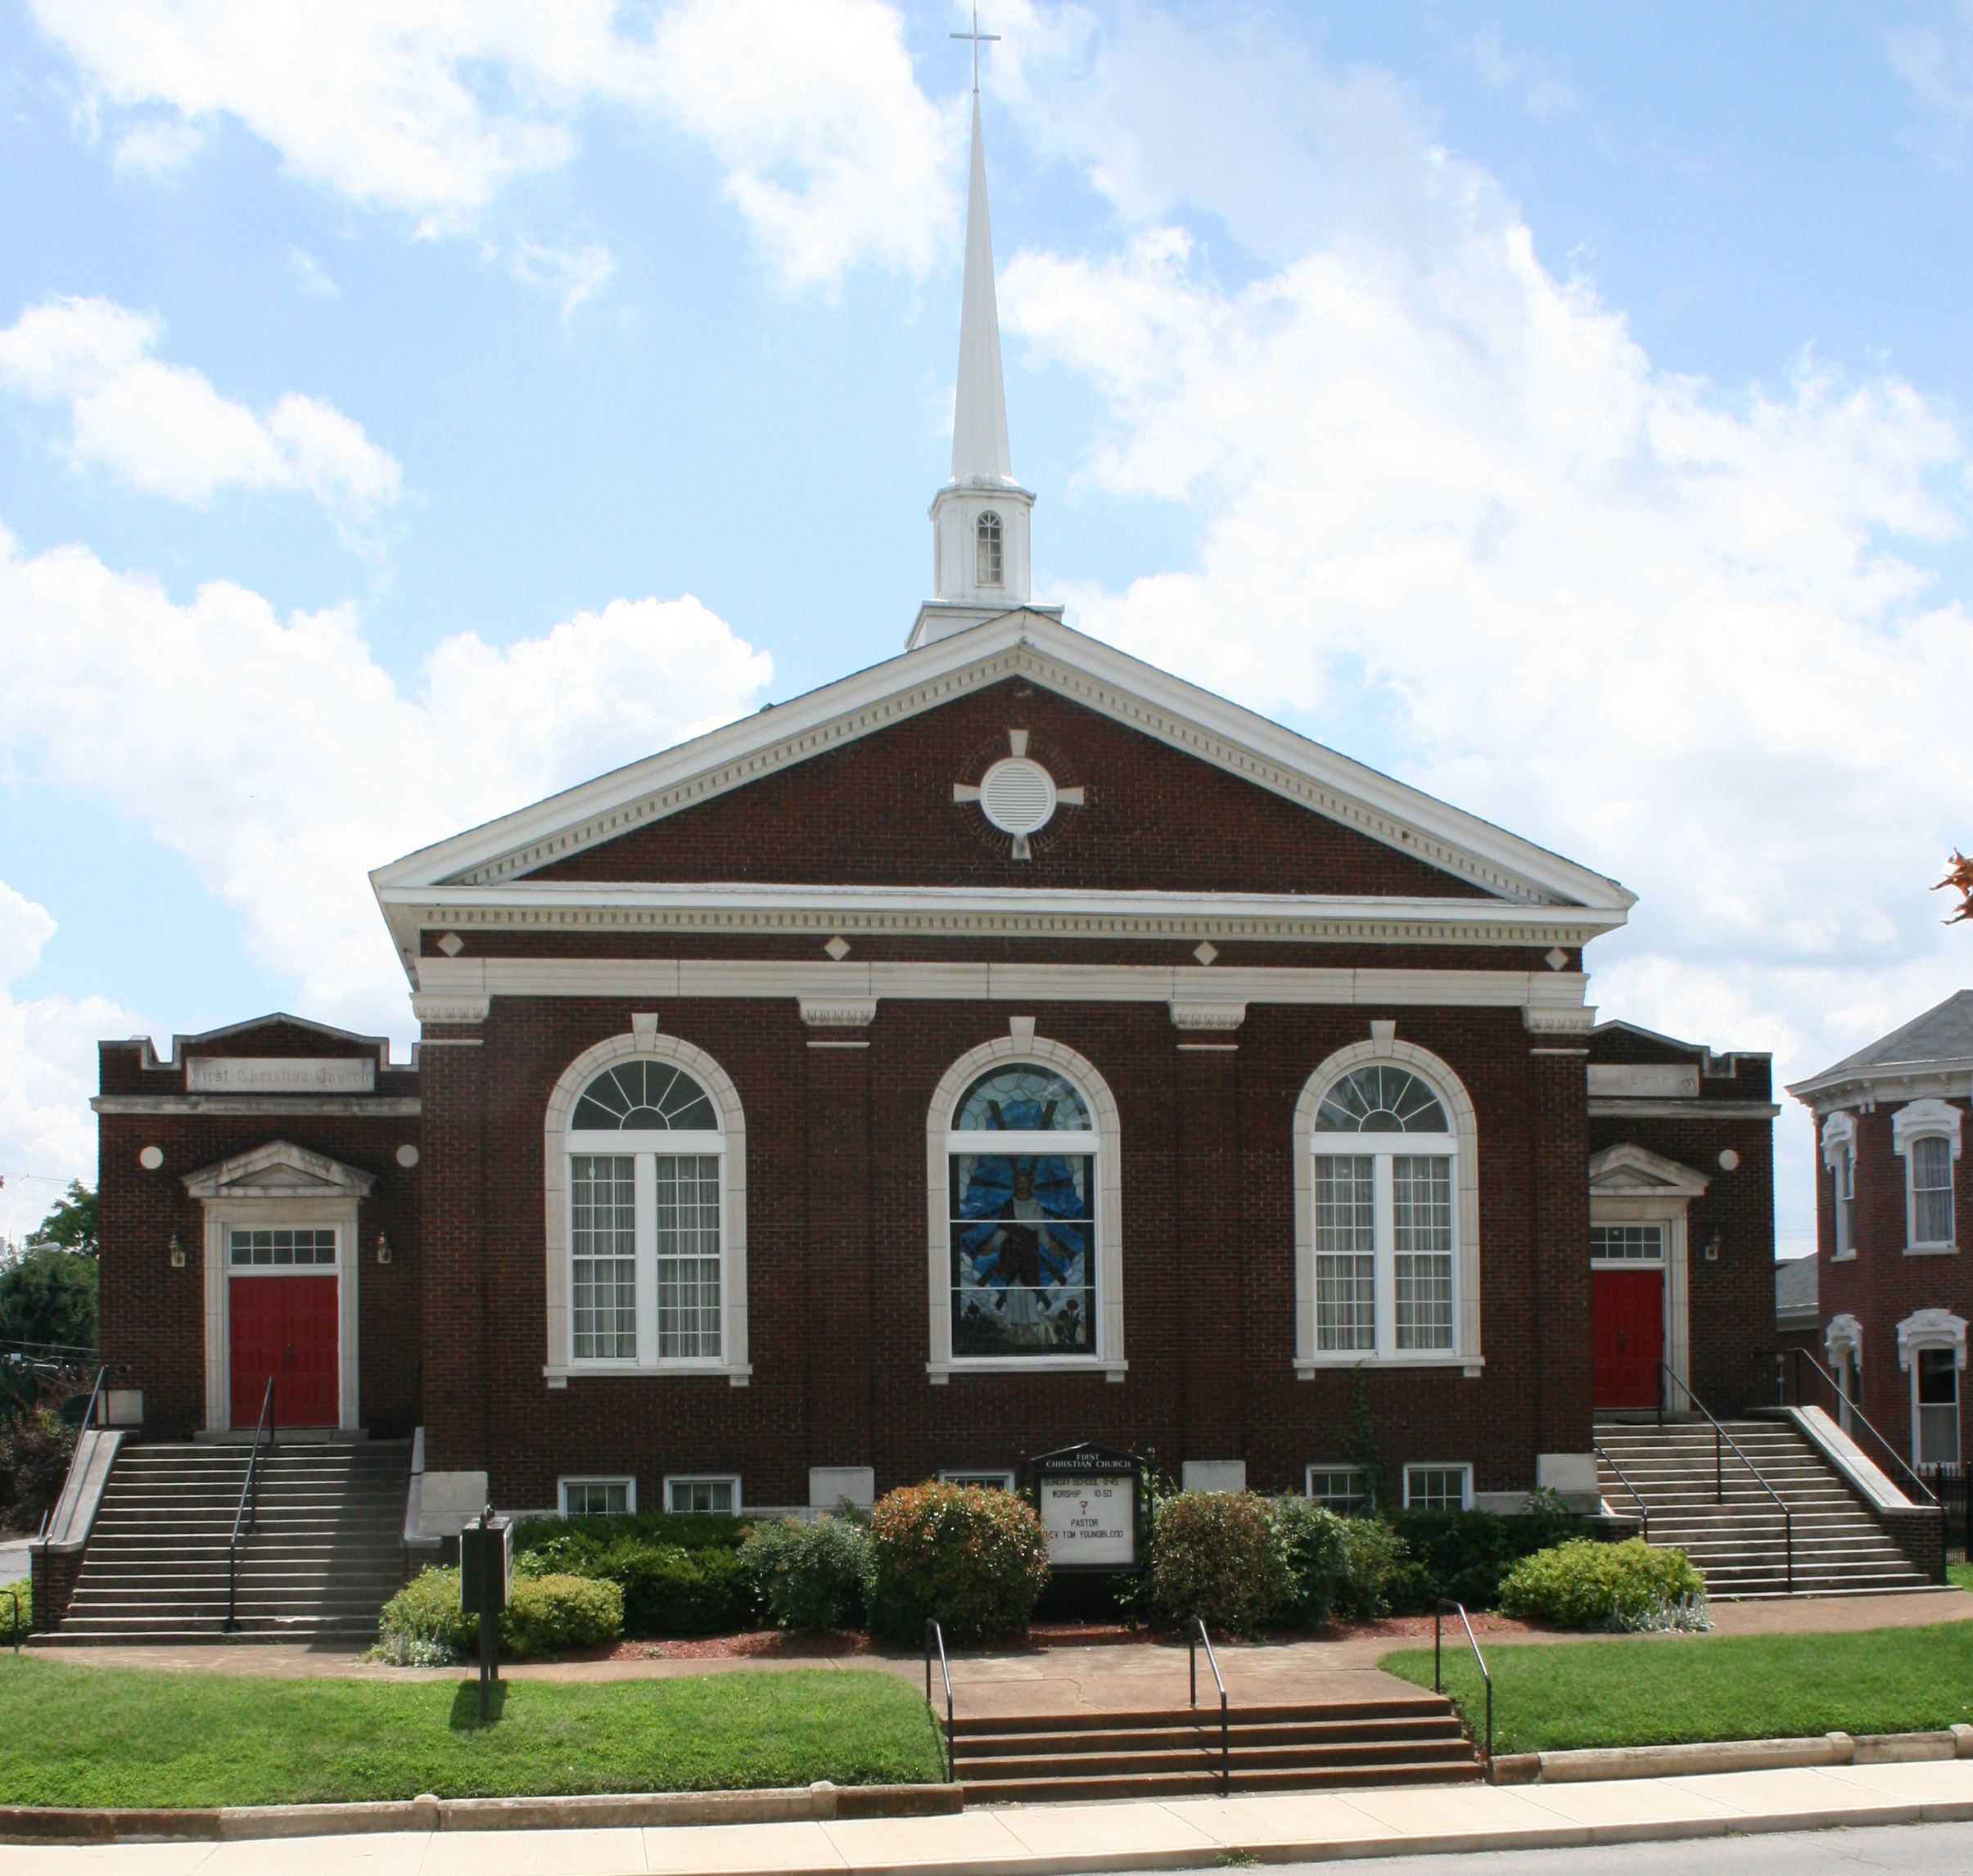 Insight Counseling Centers in Clarksville, TN, hosted by First Christian Church